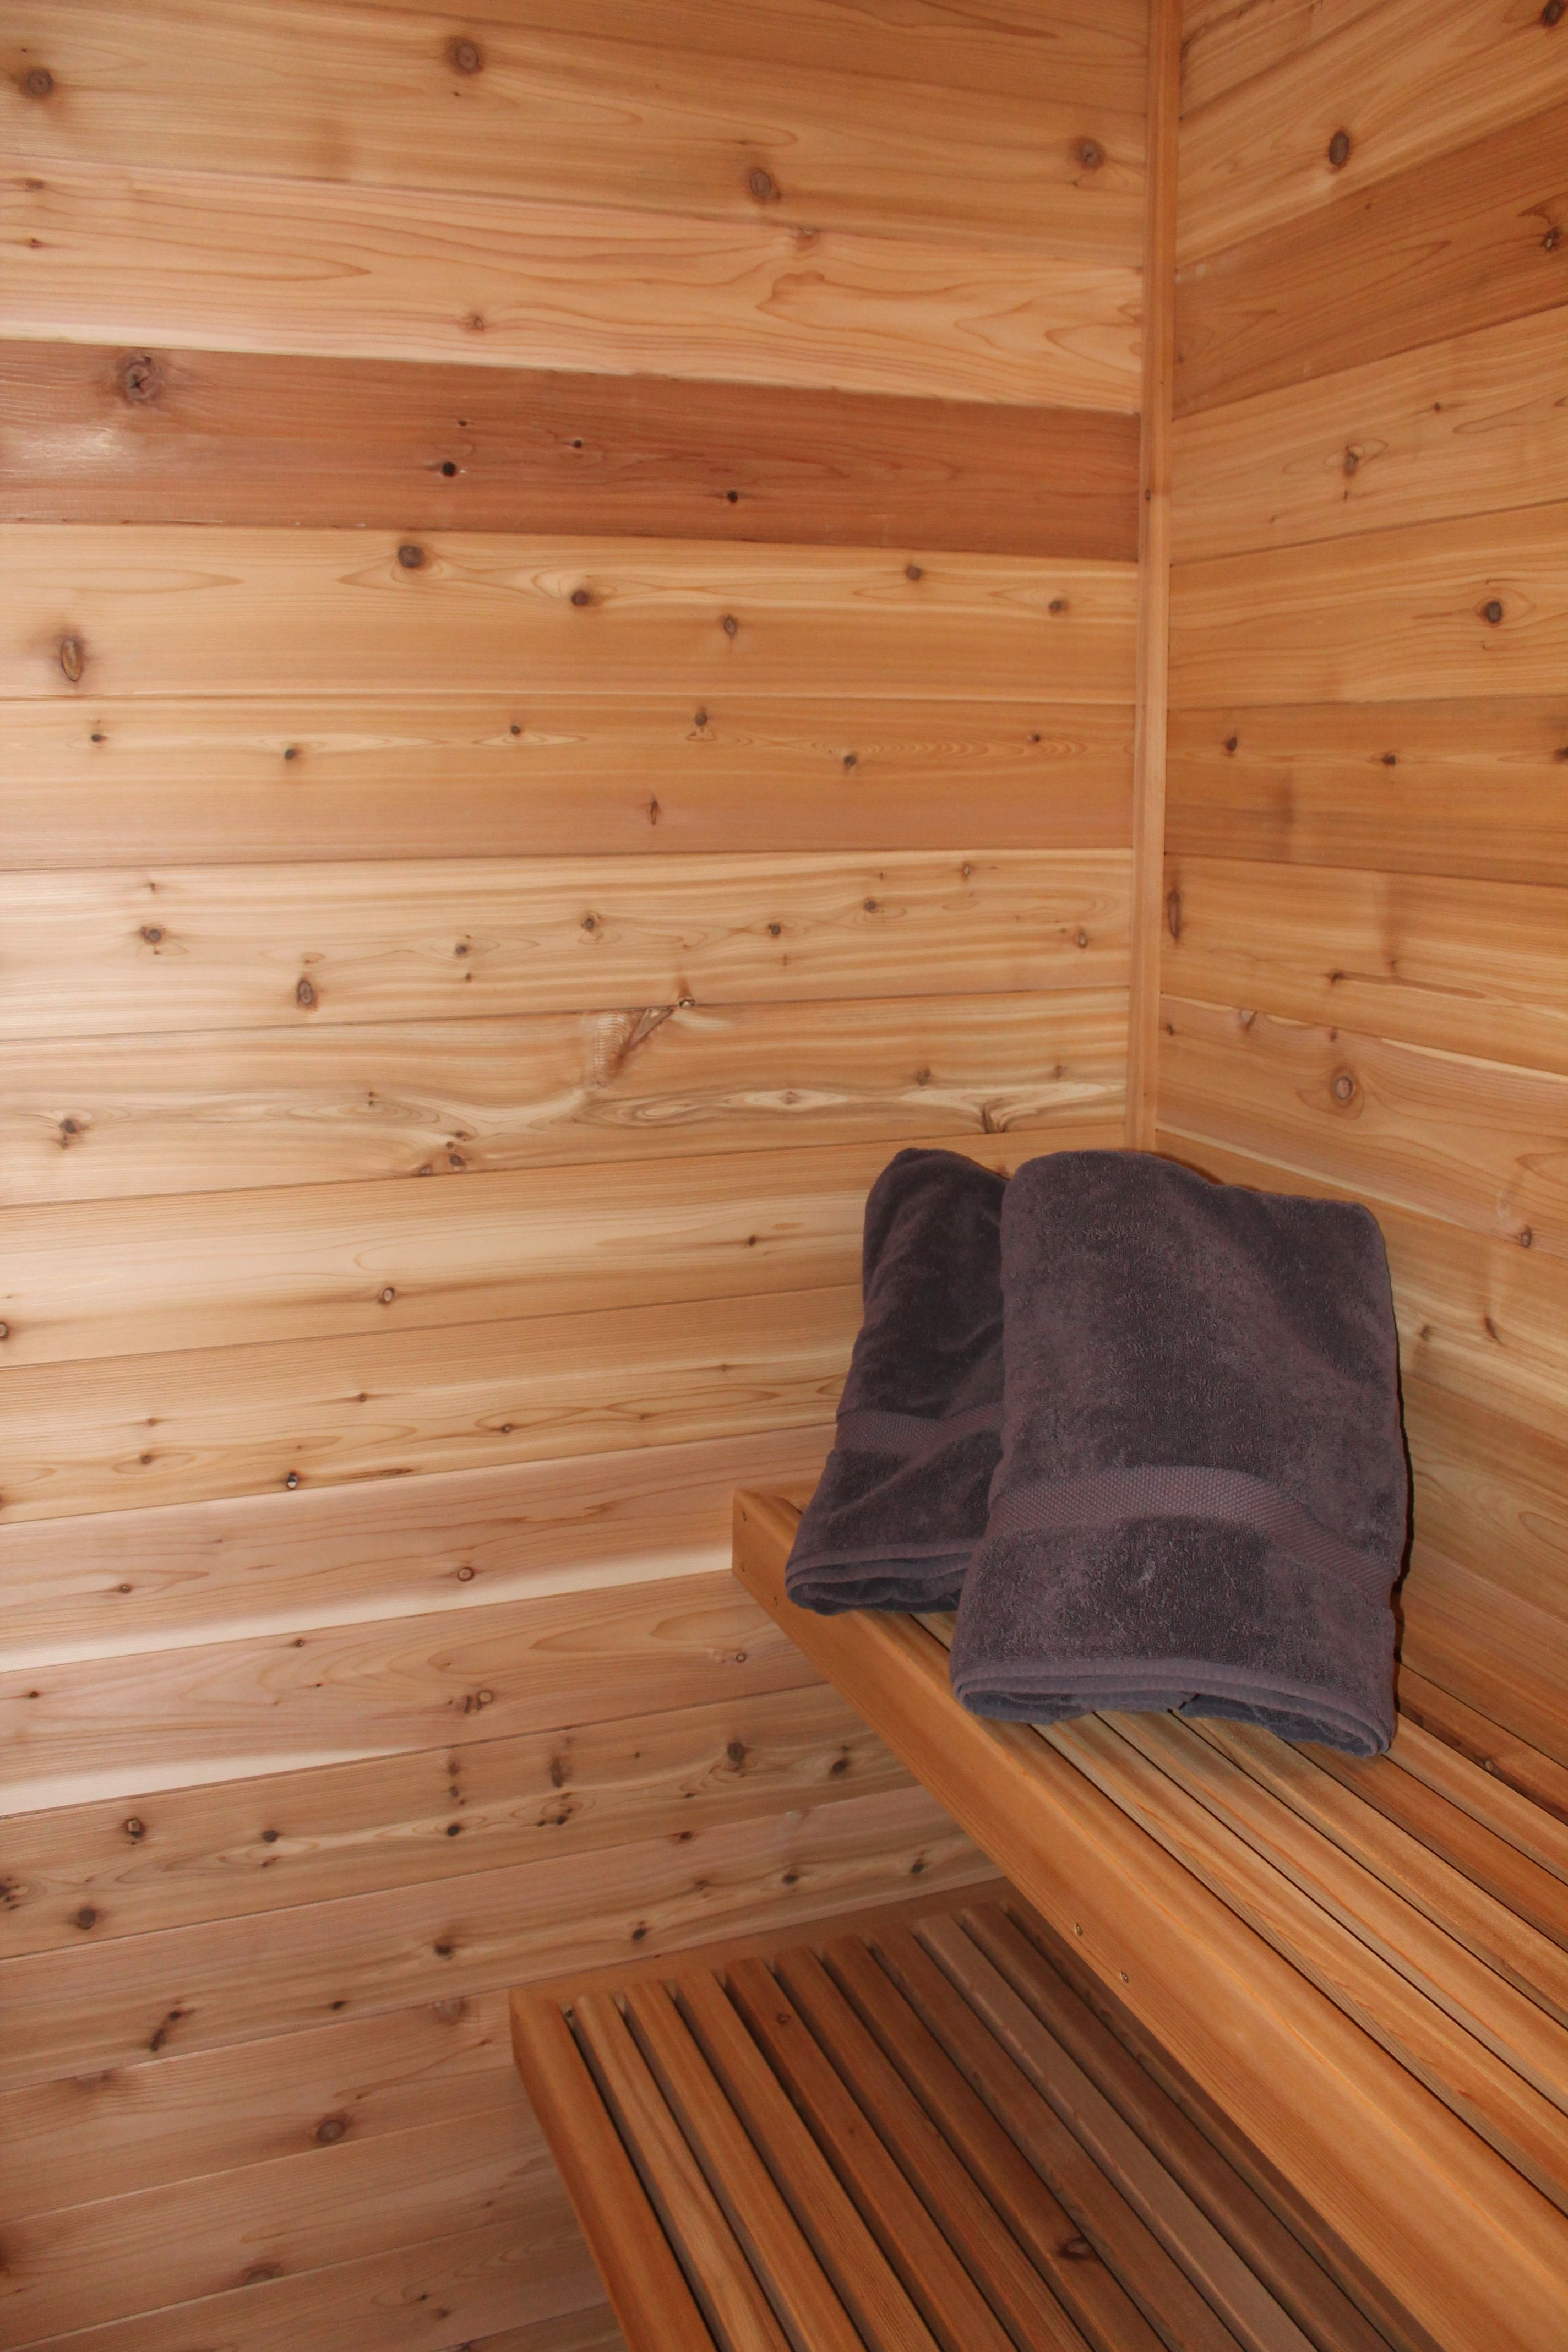 Tight Knot Satin Cedar Standard V Joint Endura Oil Tongue And Groove Panelling Wall Paneling Rustic Elegance